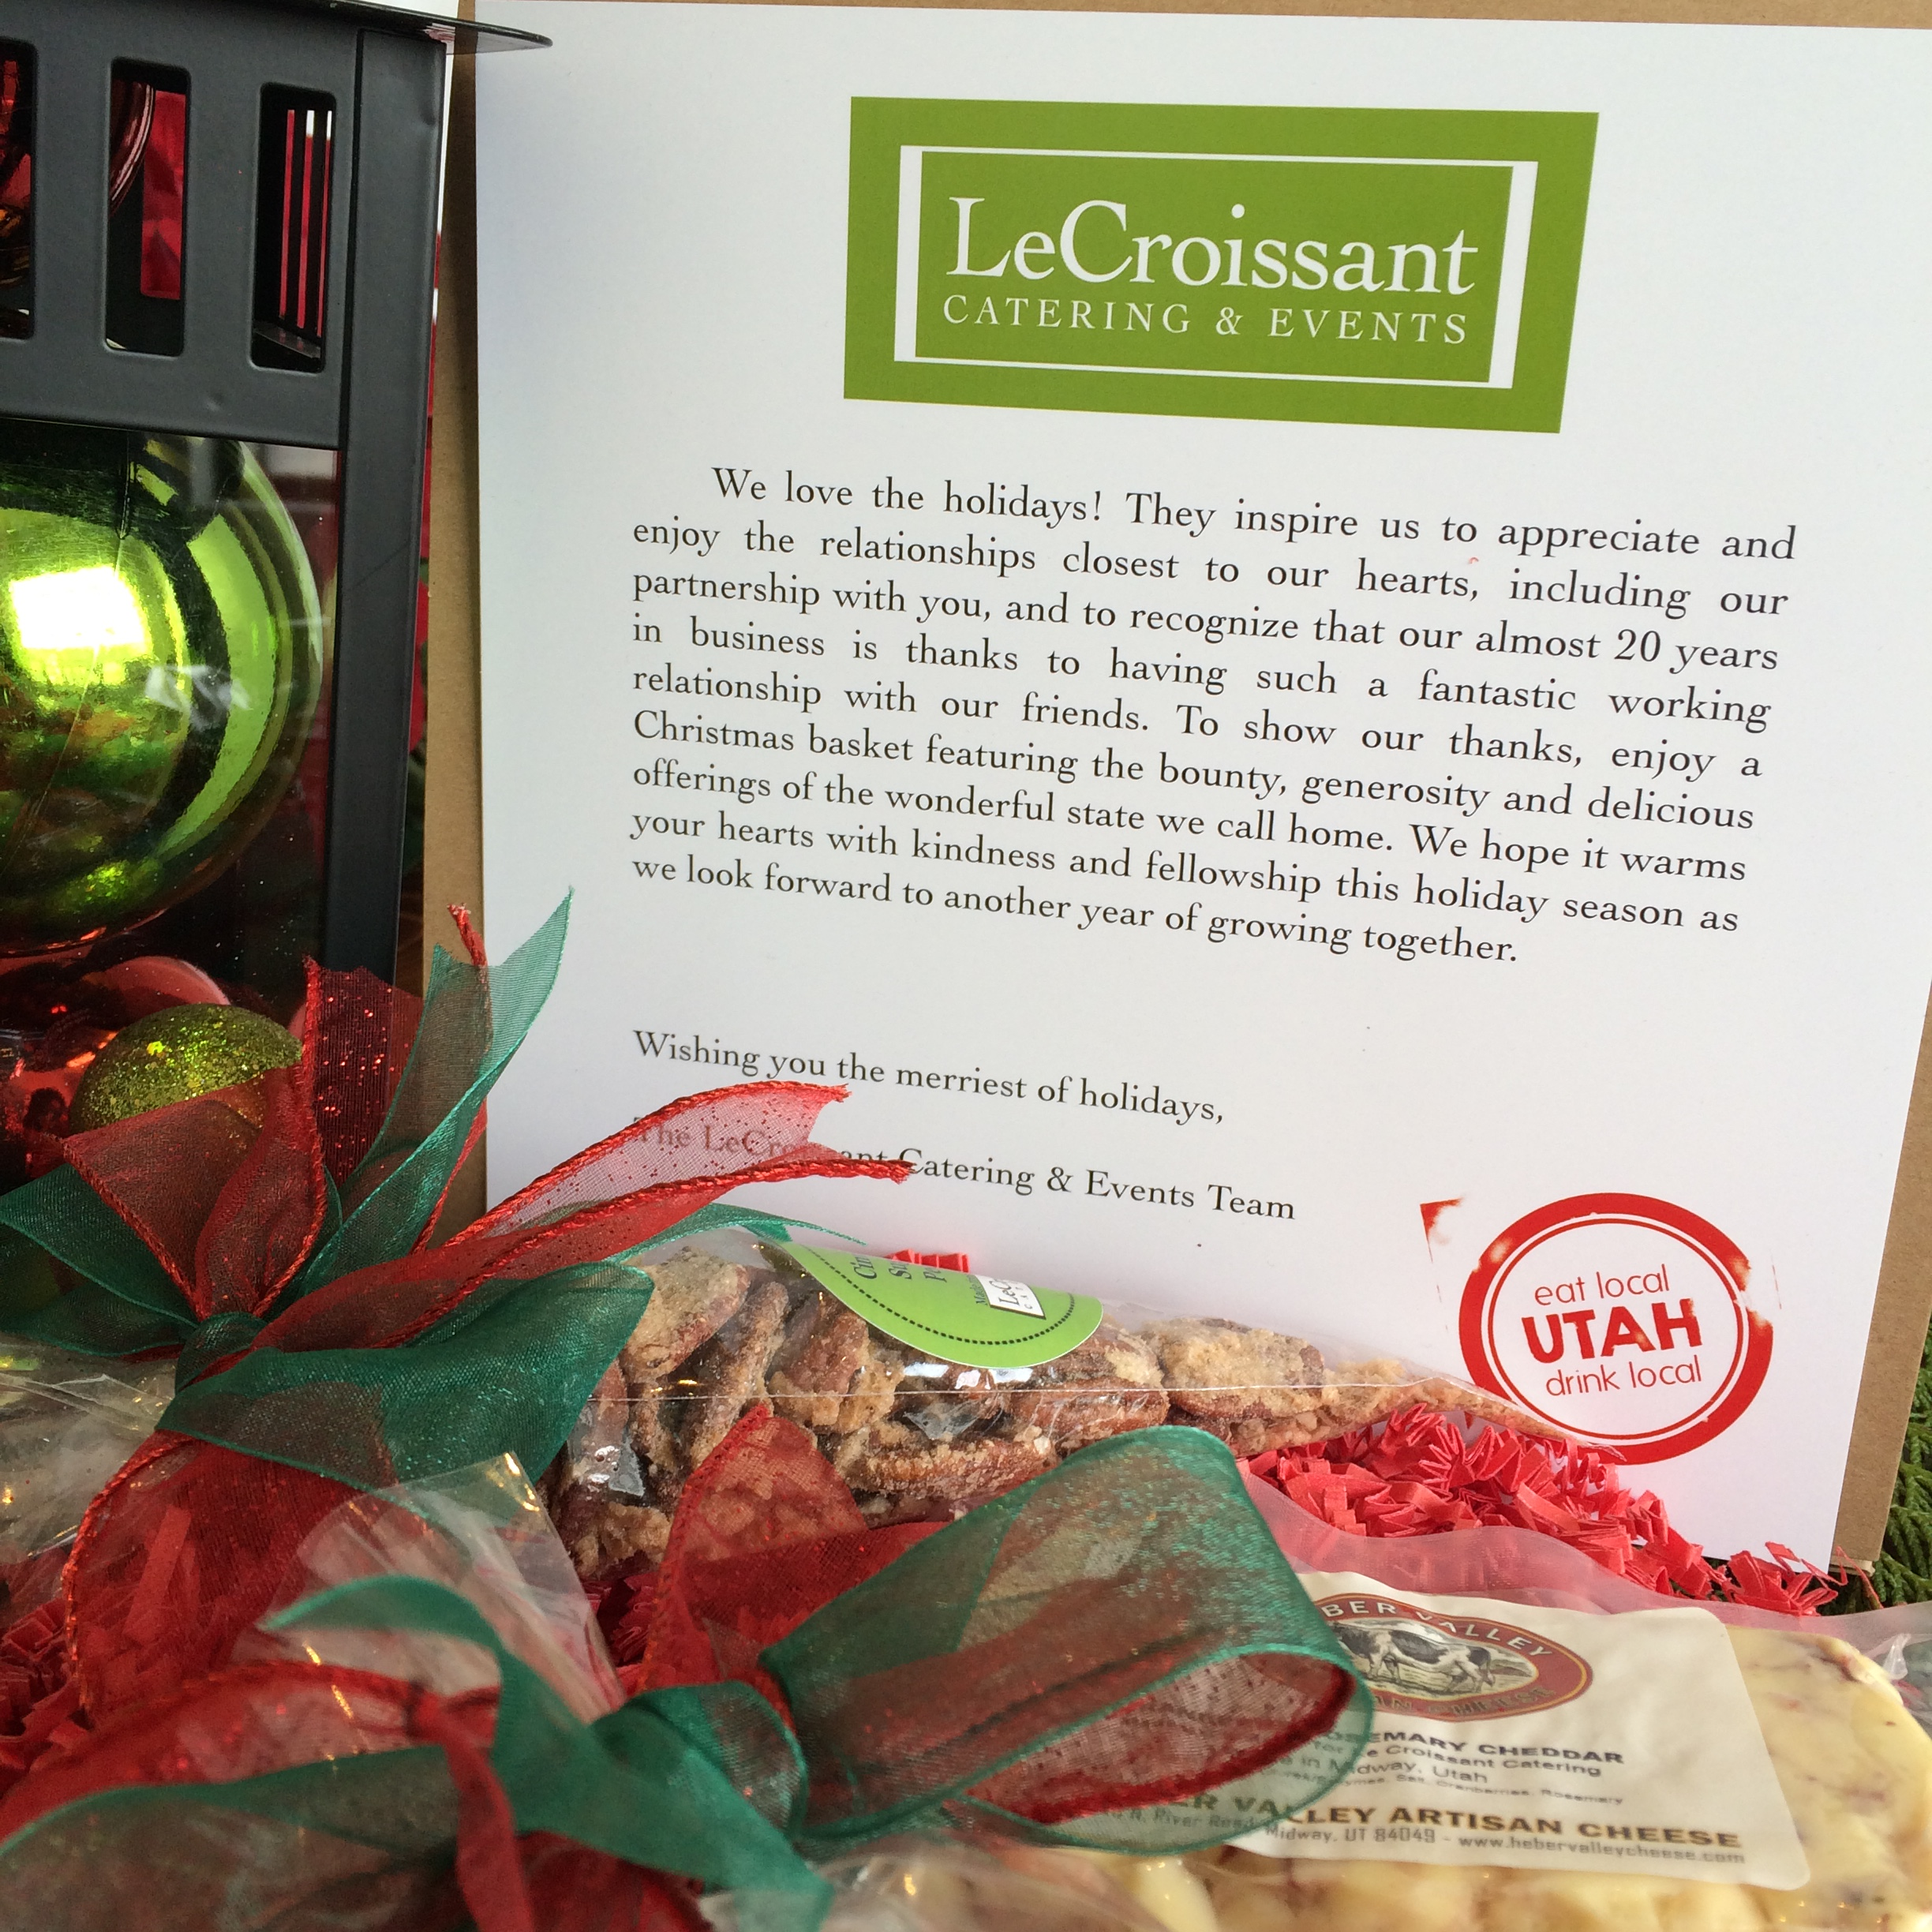 Lux Catering and Events is grateful for our friends and business partners. LeCroissant Catering and Event's 2014 Holiday Gift LeCroissant Catering and Event's 2014 Holiday Gift 2014 12 17 11